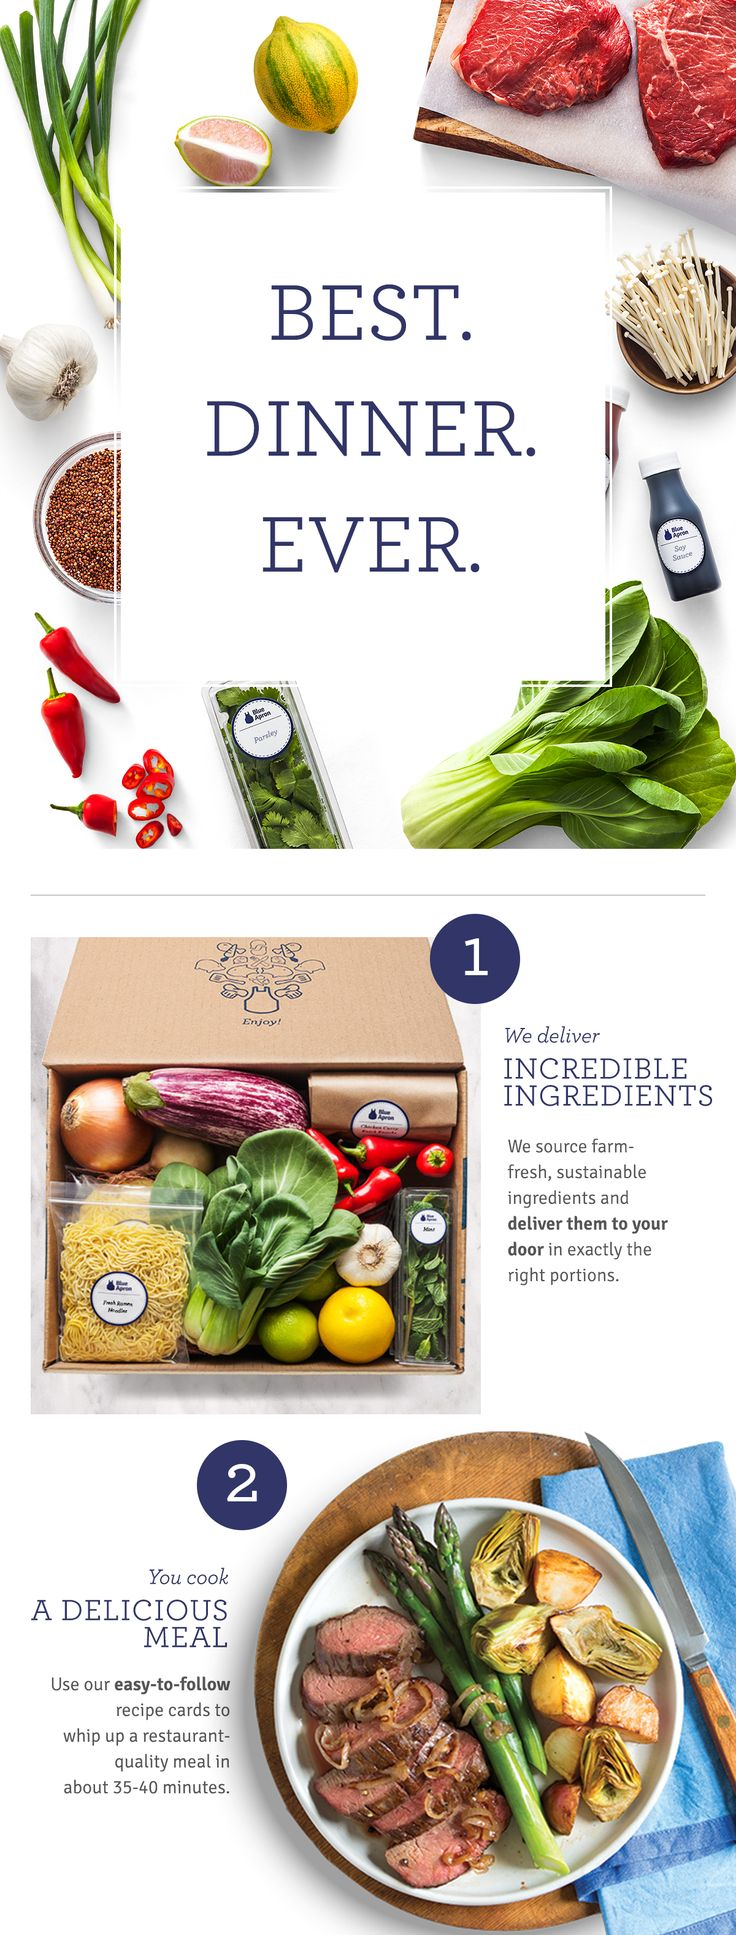 Blue apron edmonton - Blue Apron Makes It Easy To Create Incredible Meals Each Week With Farm Fresh Produce